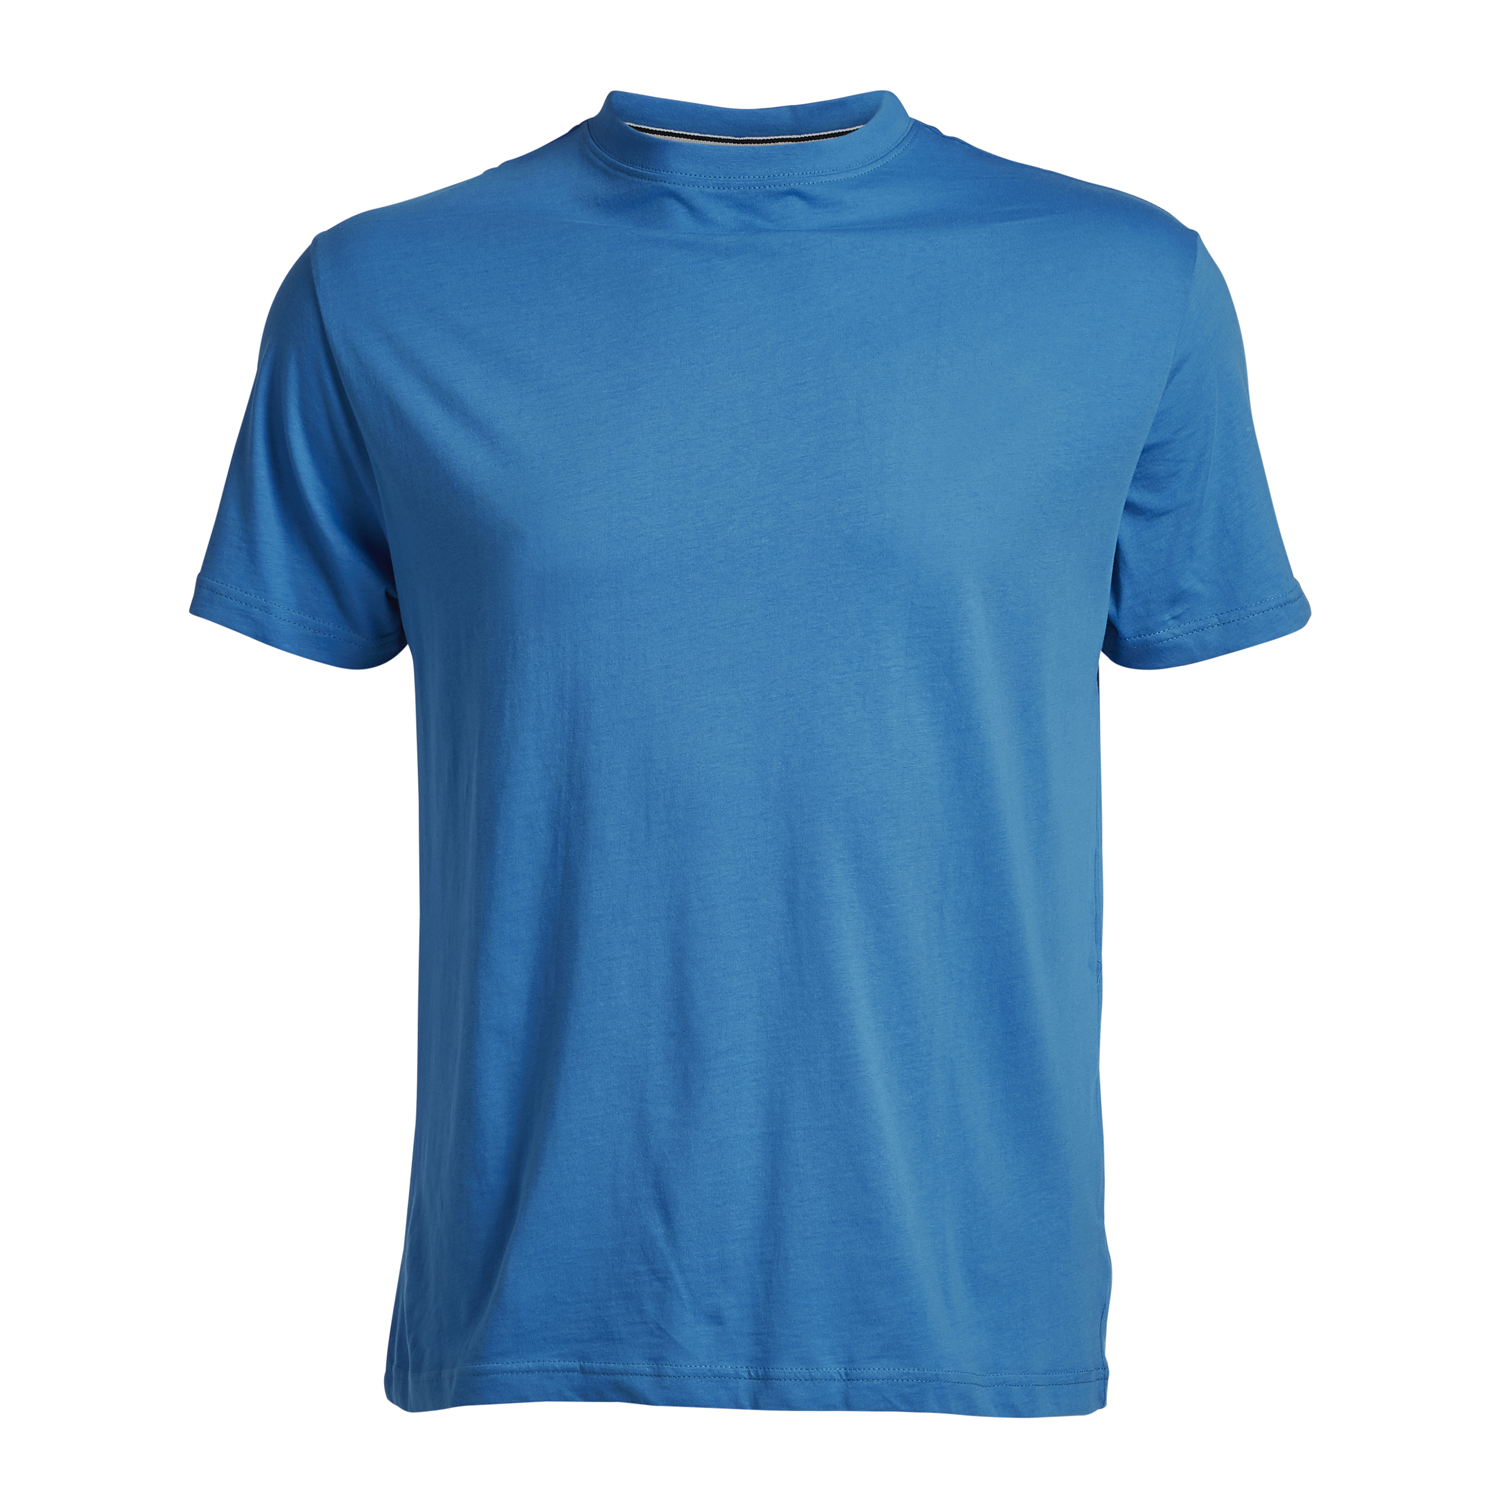 Detail Image to Blue basic t-shirt by North56°4 in oversizes up to 8XL